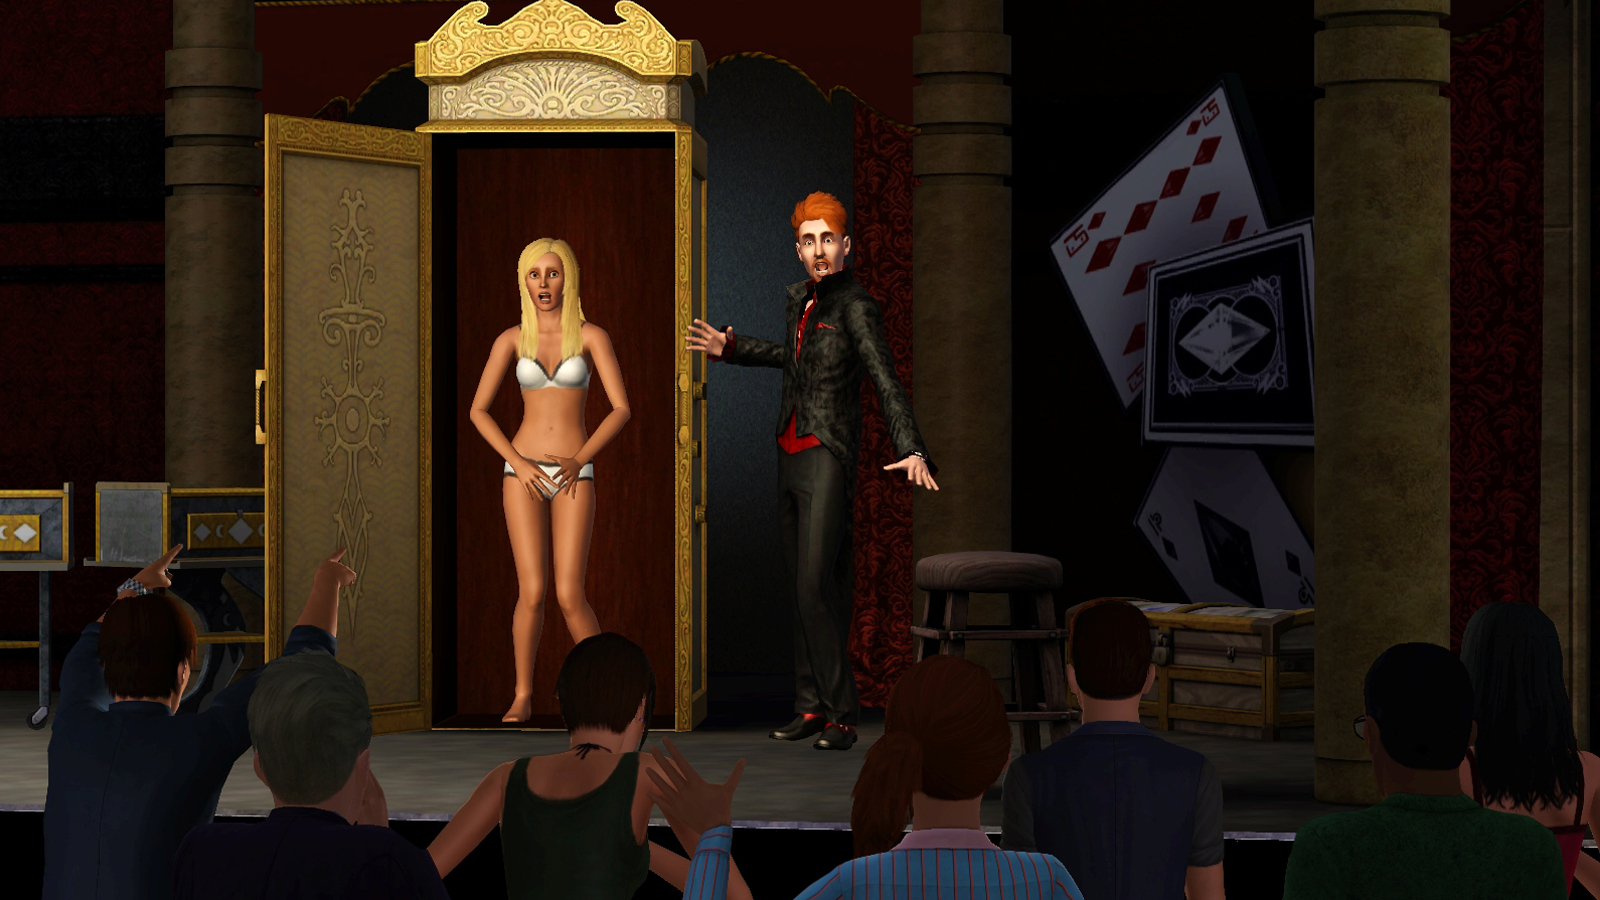 The sims 3showtime free nude skins pc nsfw films